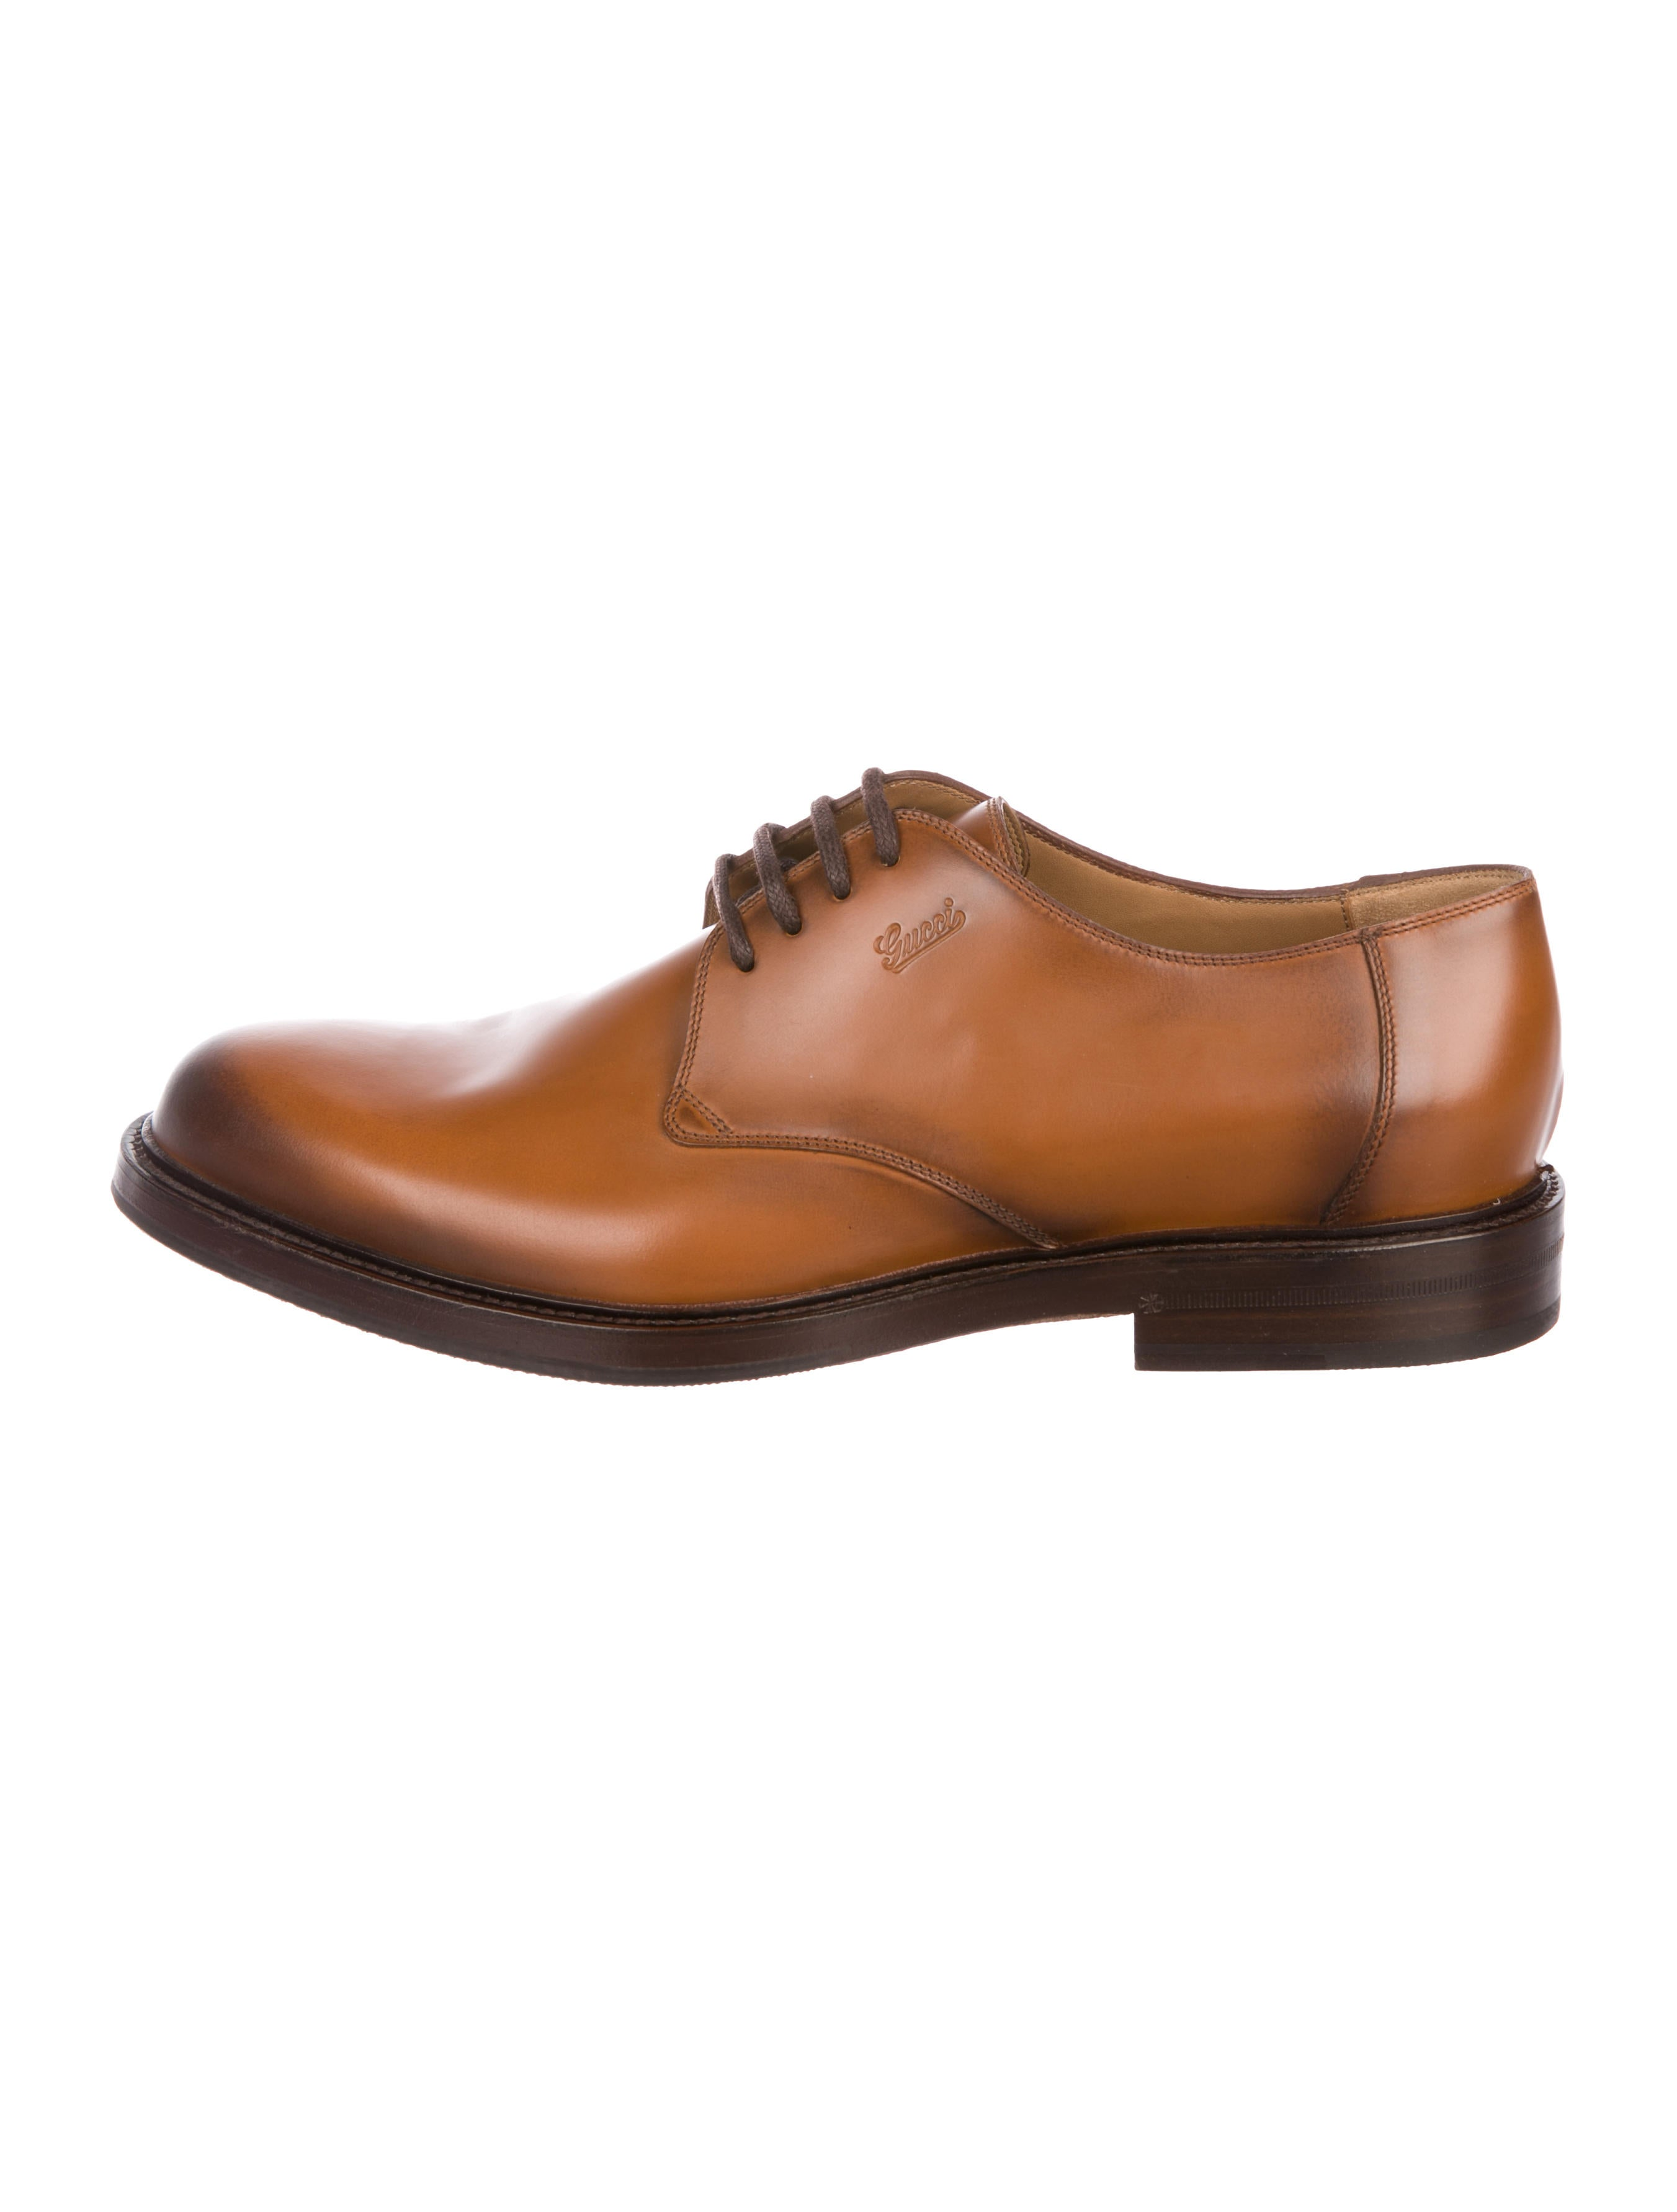 Gucci Leather Derby Shoes Shoes Guc297986 The Realreal